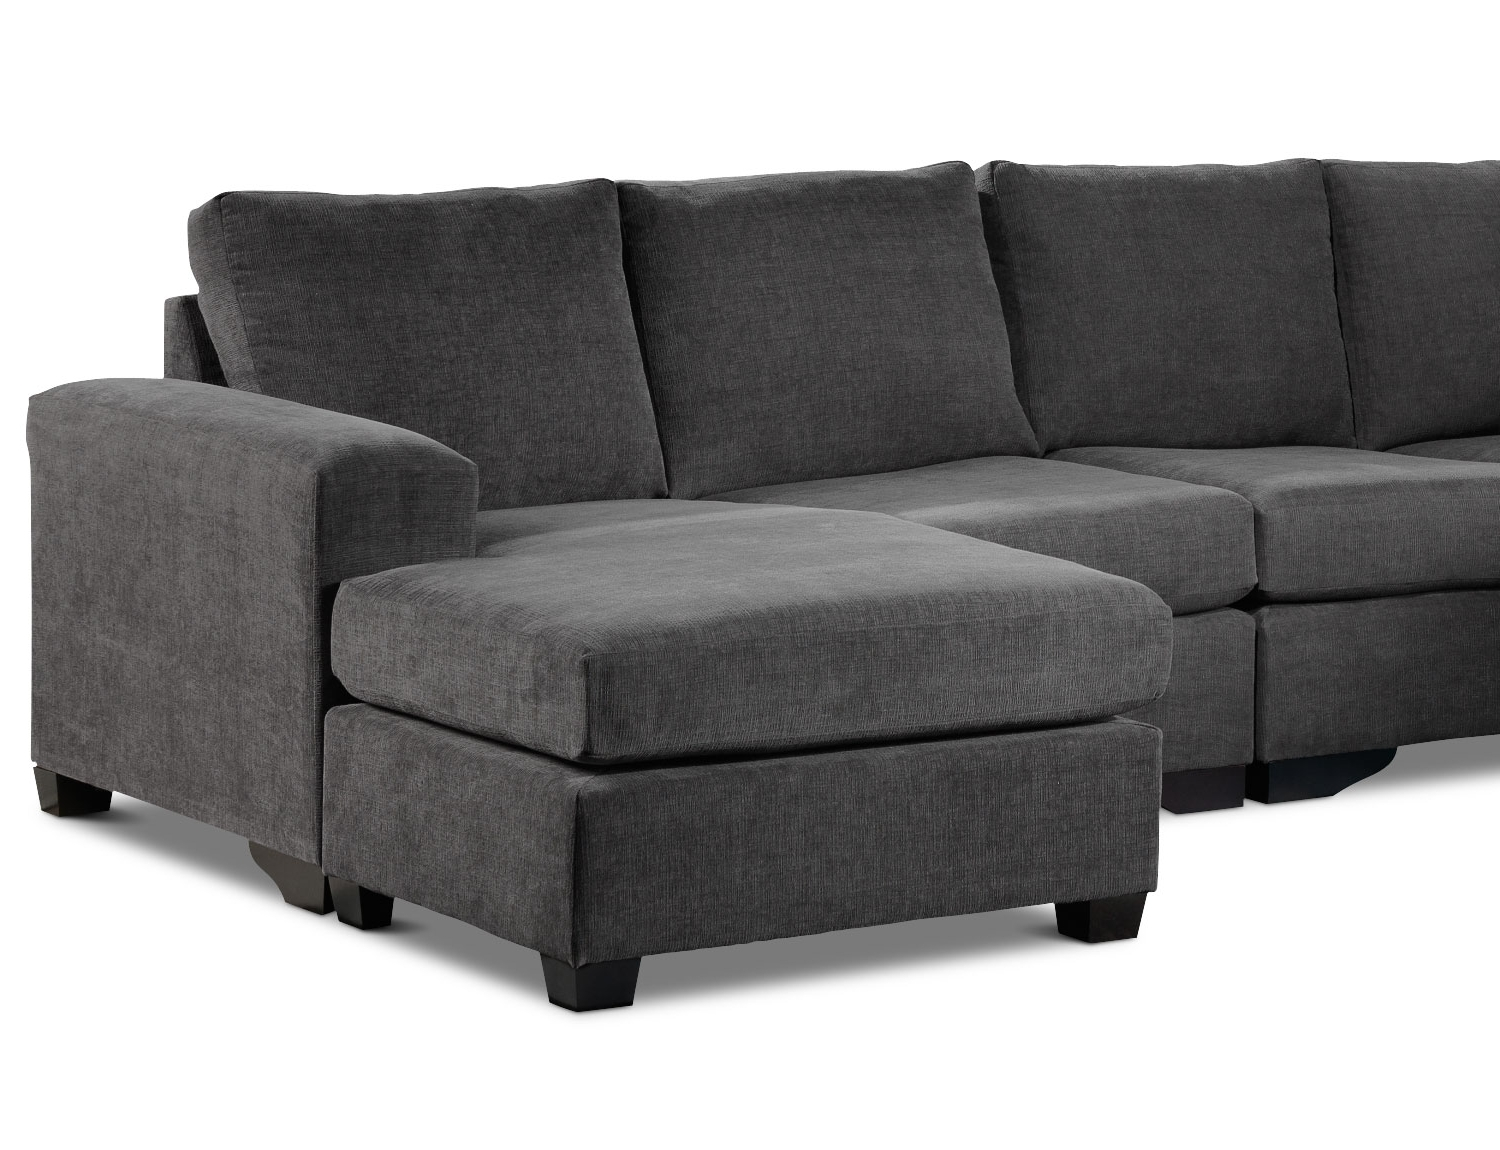 Danielle 3 Piece Sectional With Right Facing Corner Wedge – Grey Inside Well Known Mobilia Sectional Sofas (View 12 of 20)